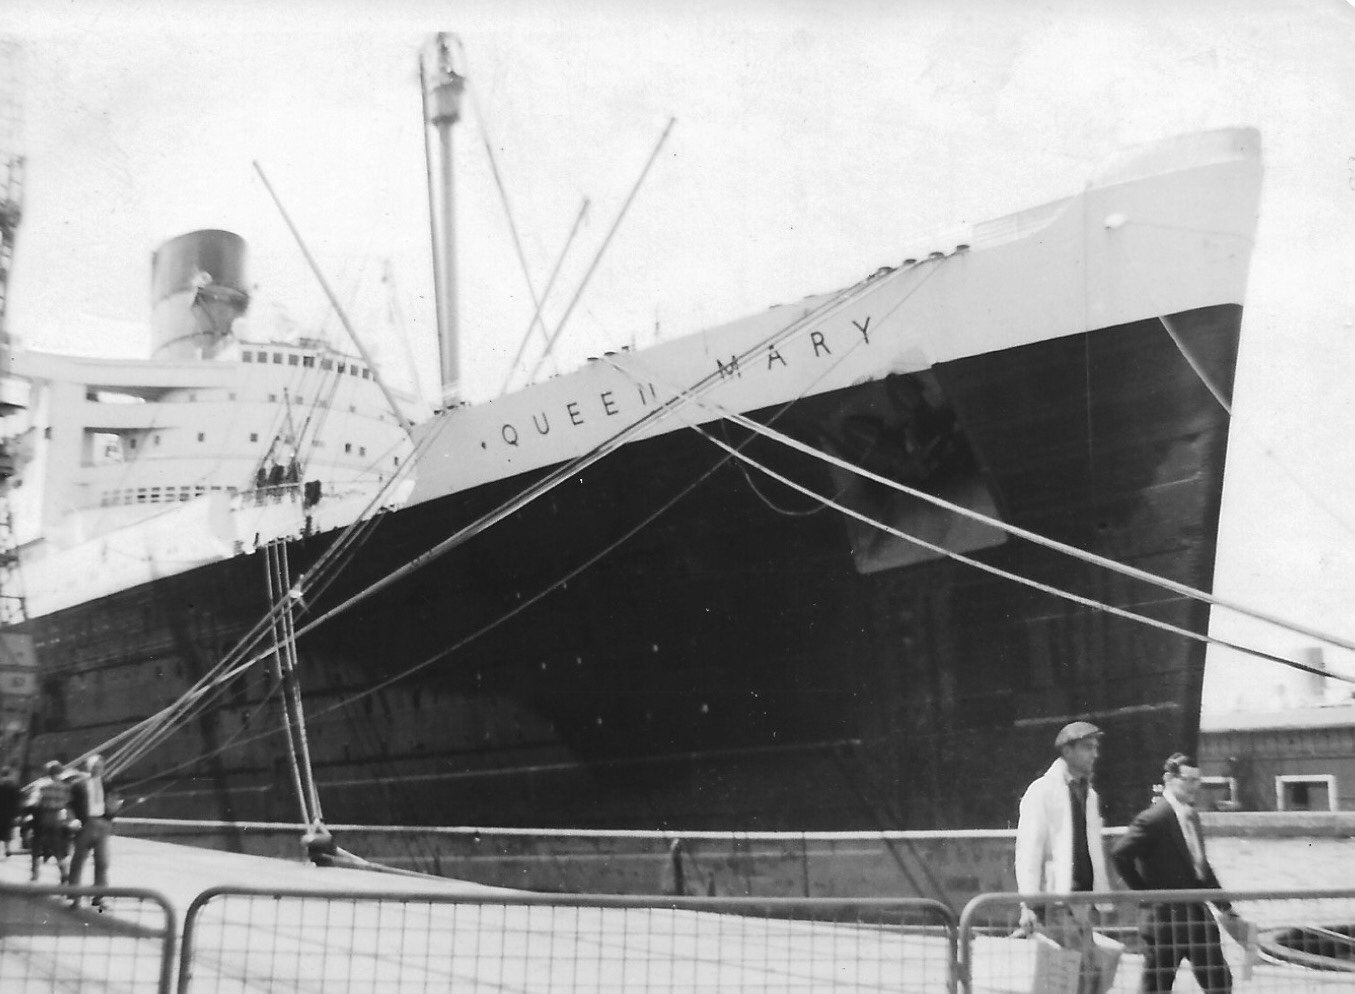 Nave Queen Mary